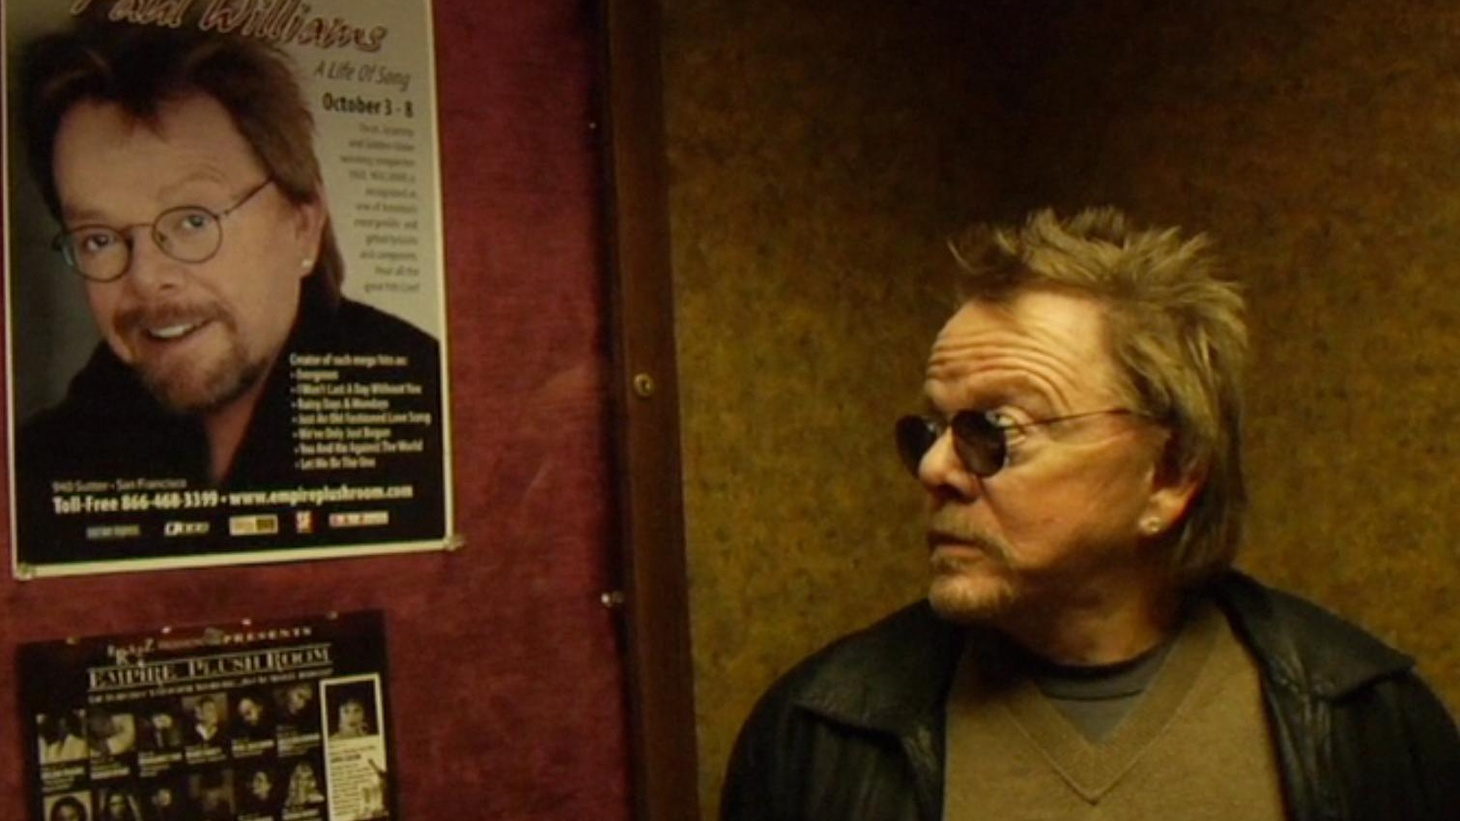 We talk the doc 'Paul Williams: Still Alive' with filmmaker Stephen Kessler and Paul Williams.